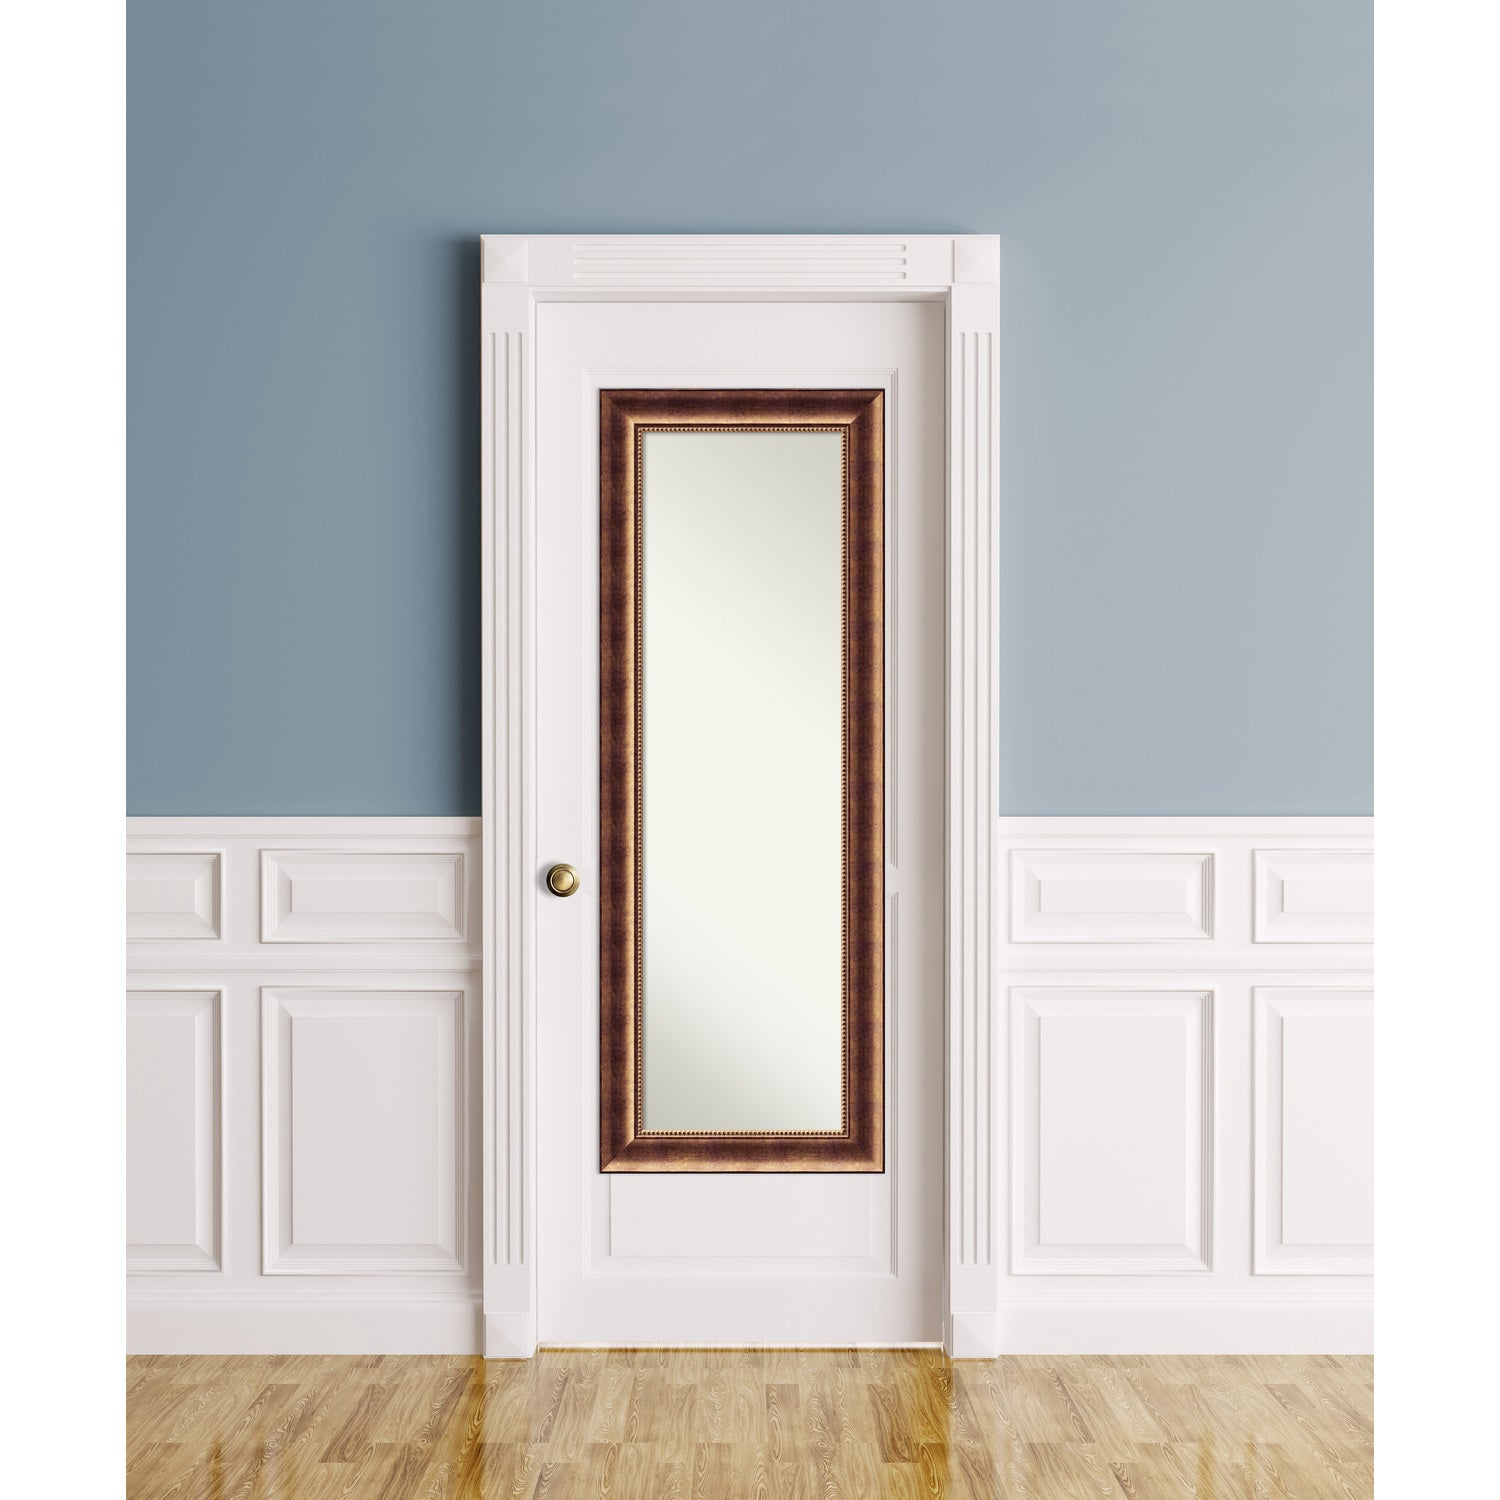 On The Door Full Length Wall Mirror Manhattan Bronze 20 x 54-inch - Free Shipping Today - Overstock - 21802877  sc 1 st  Overstock.com & On The Door Full Length Wall Mirror Manhattan Bronze 20 x 54-inch ...